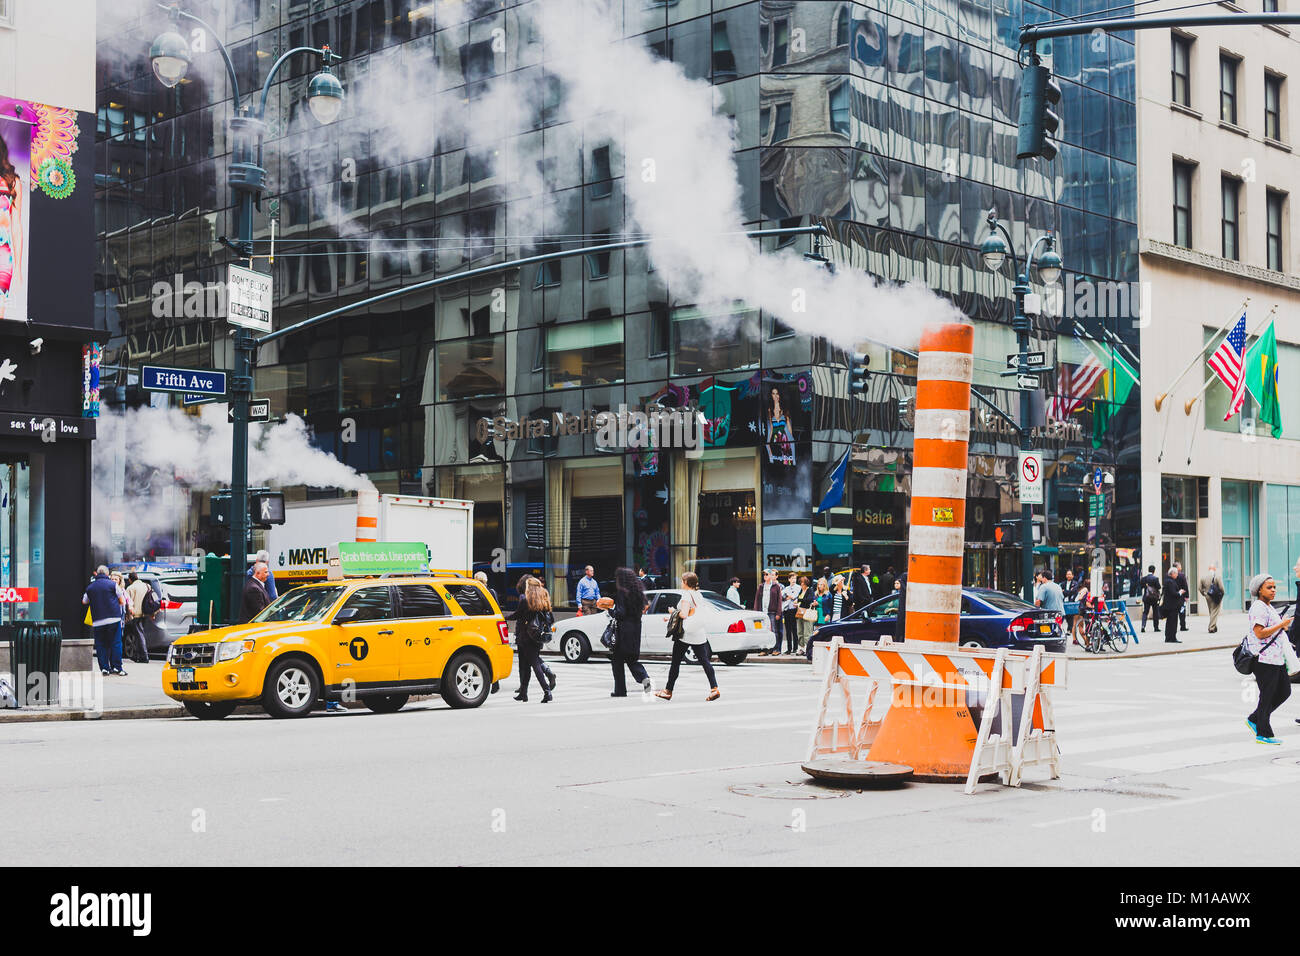 NEW YORK, NY - June 9th, 2014: steam vent cones in the streets of Manhattan among the traffic - Stock Image